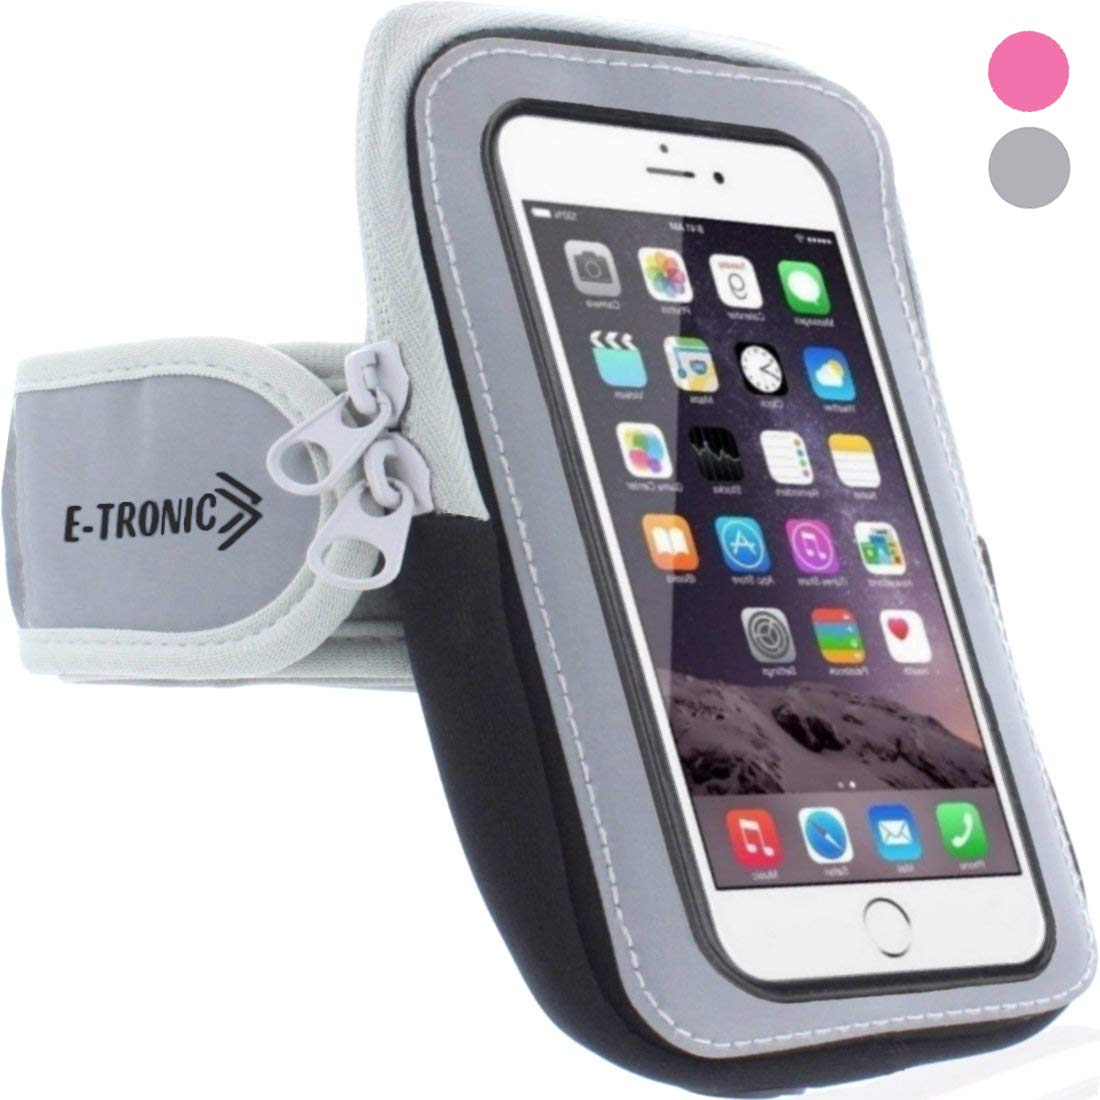 Sports Armband: Cell Phone Holder Case Arm Band Strap With Zipper Pouch/ Mobile Exercise Running Workout For Apple iPhone 6 6S 7 Plus Touch Android Samsung Galaxy S5 S6 S7 Note 4 5 Edge LG HTC Pixel by E Tronic Edge (Image #2)